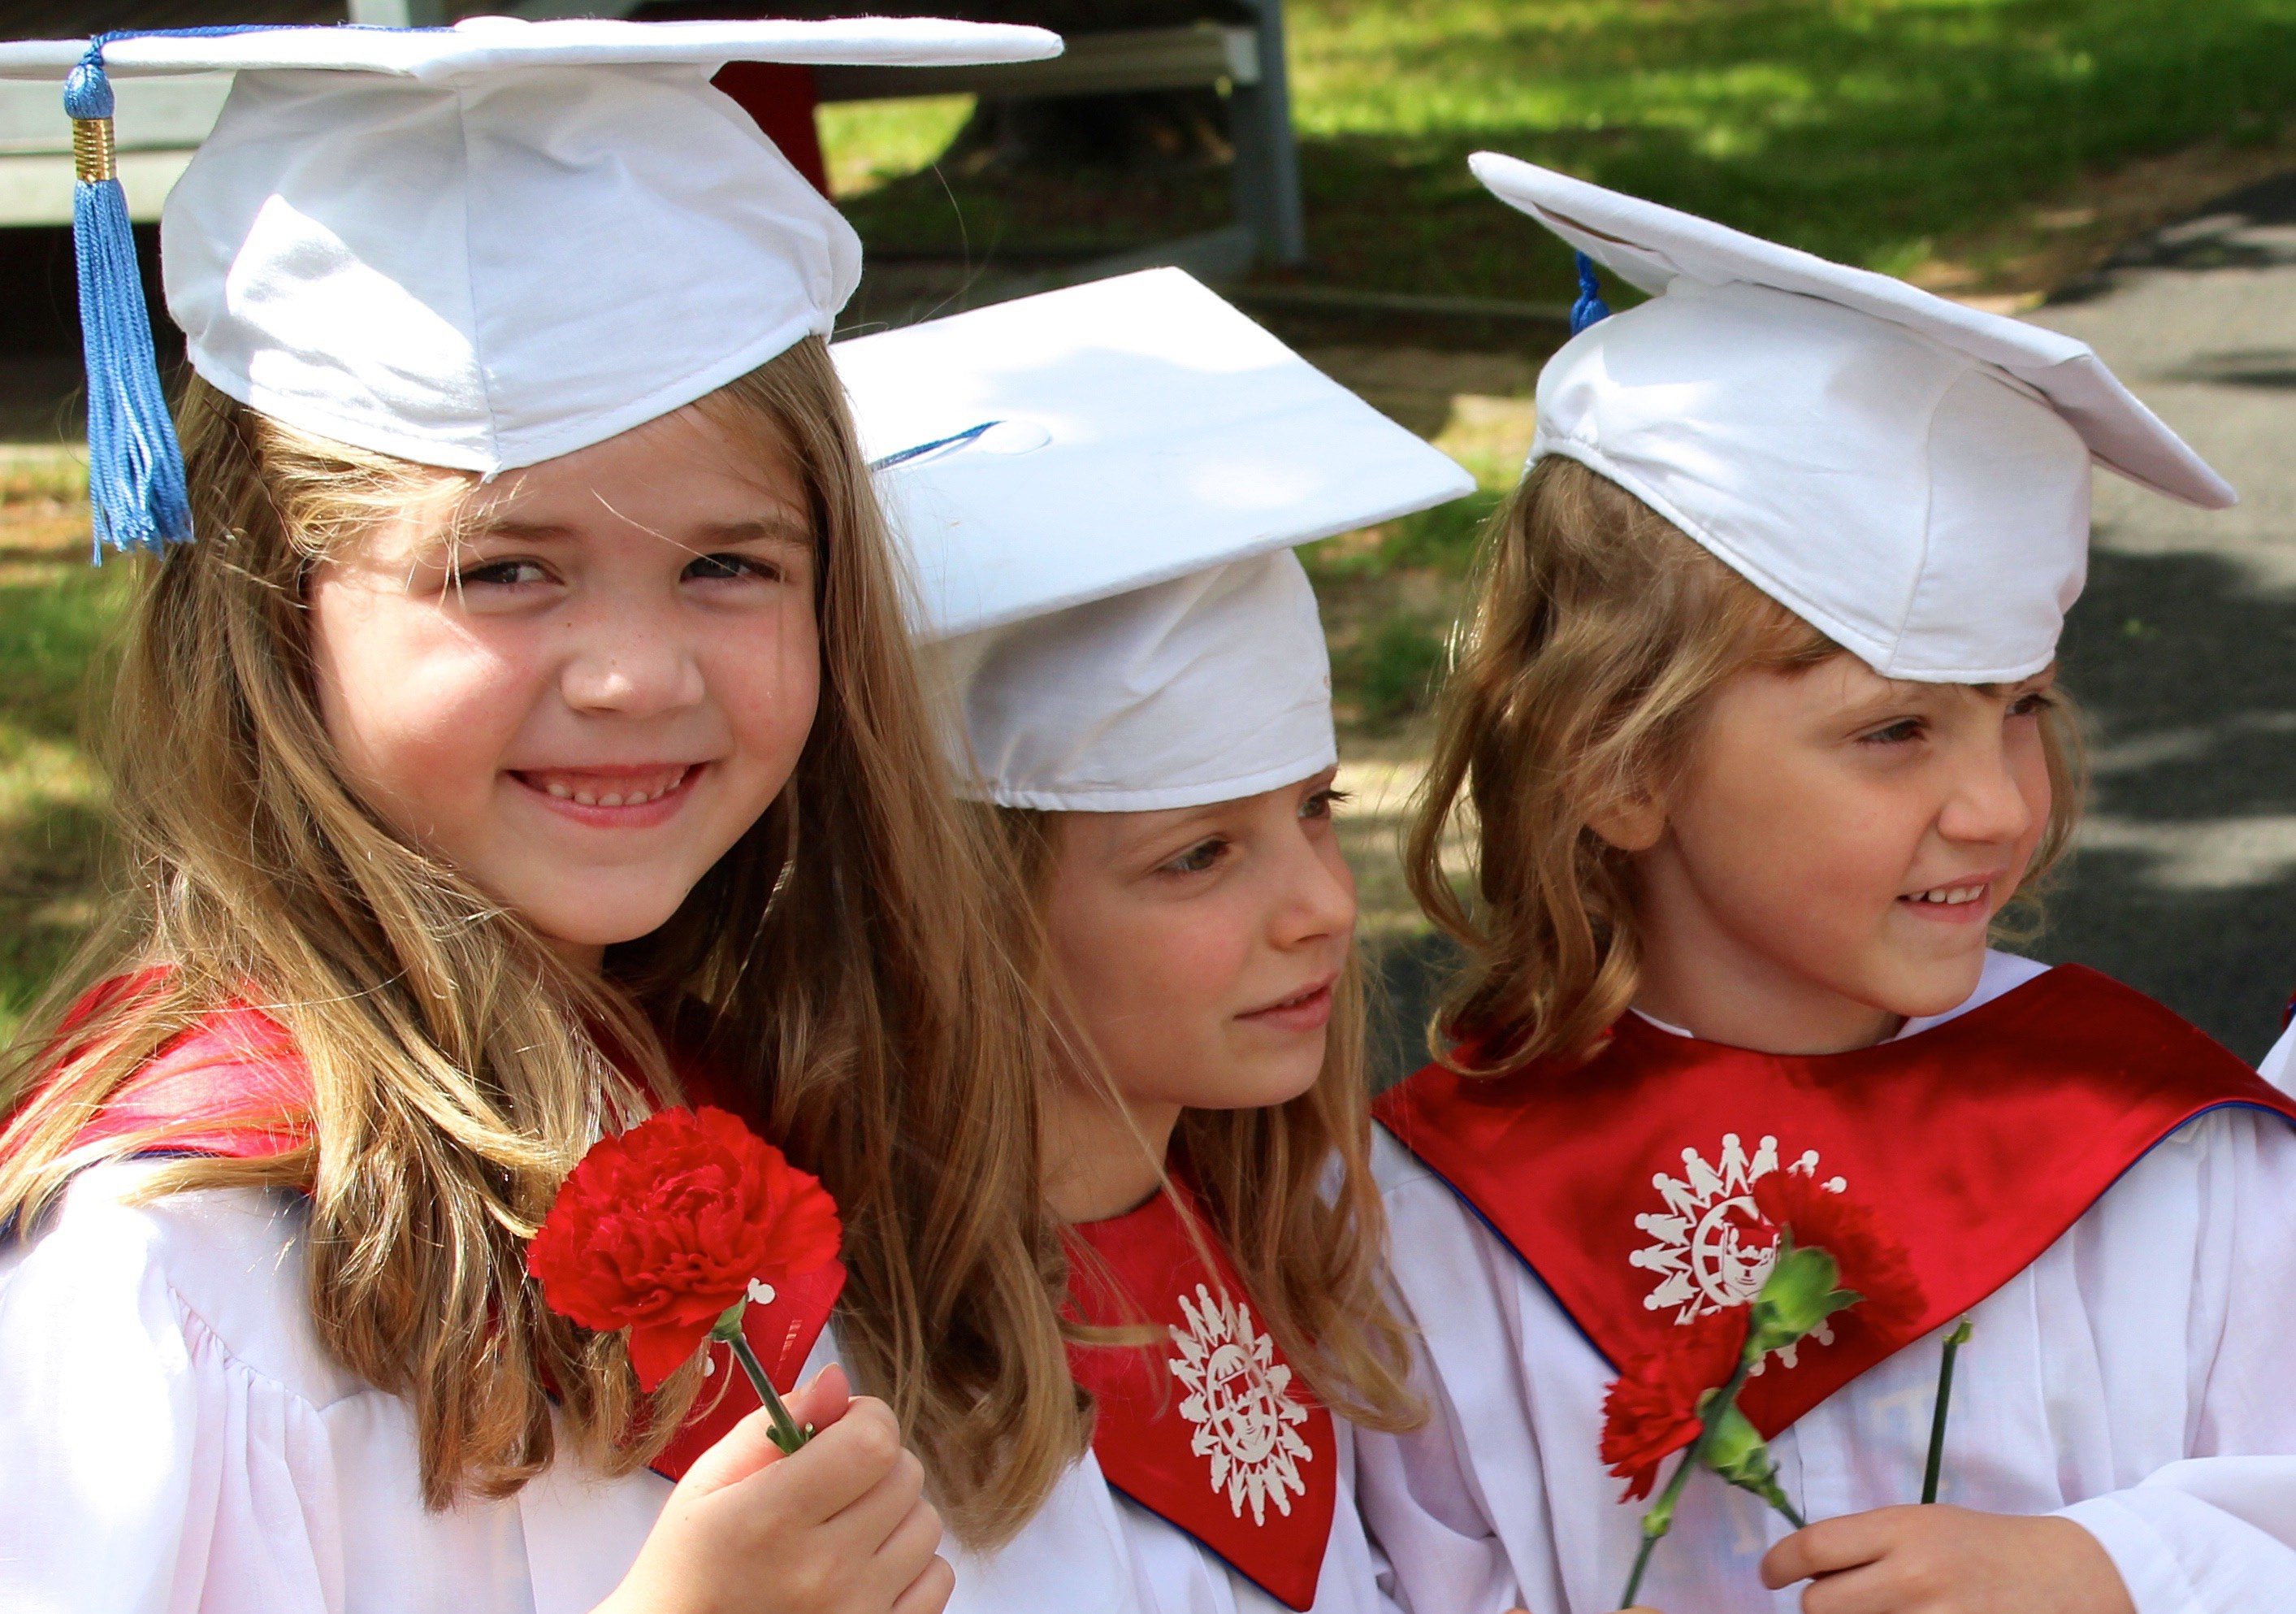 Toddlers in graduation outfits.